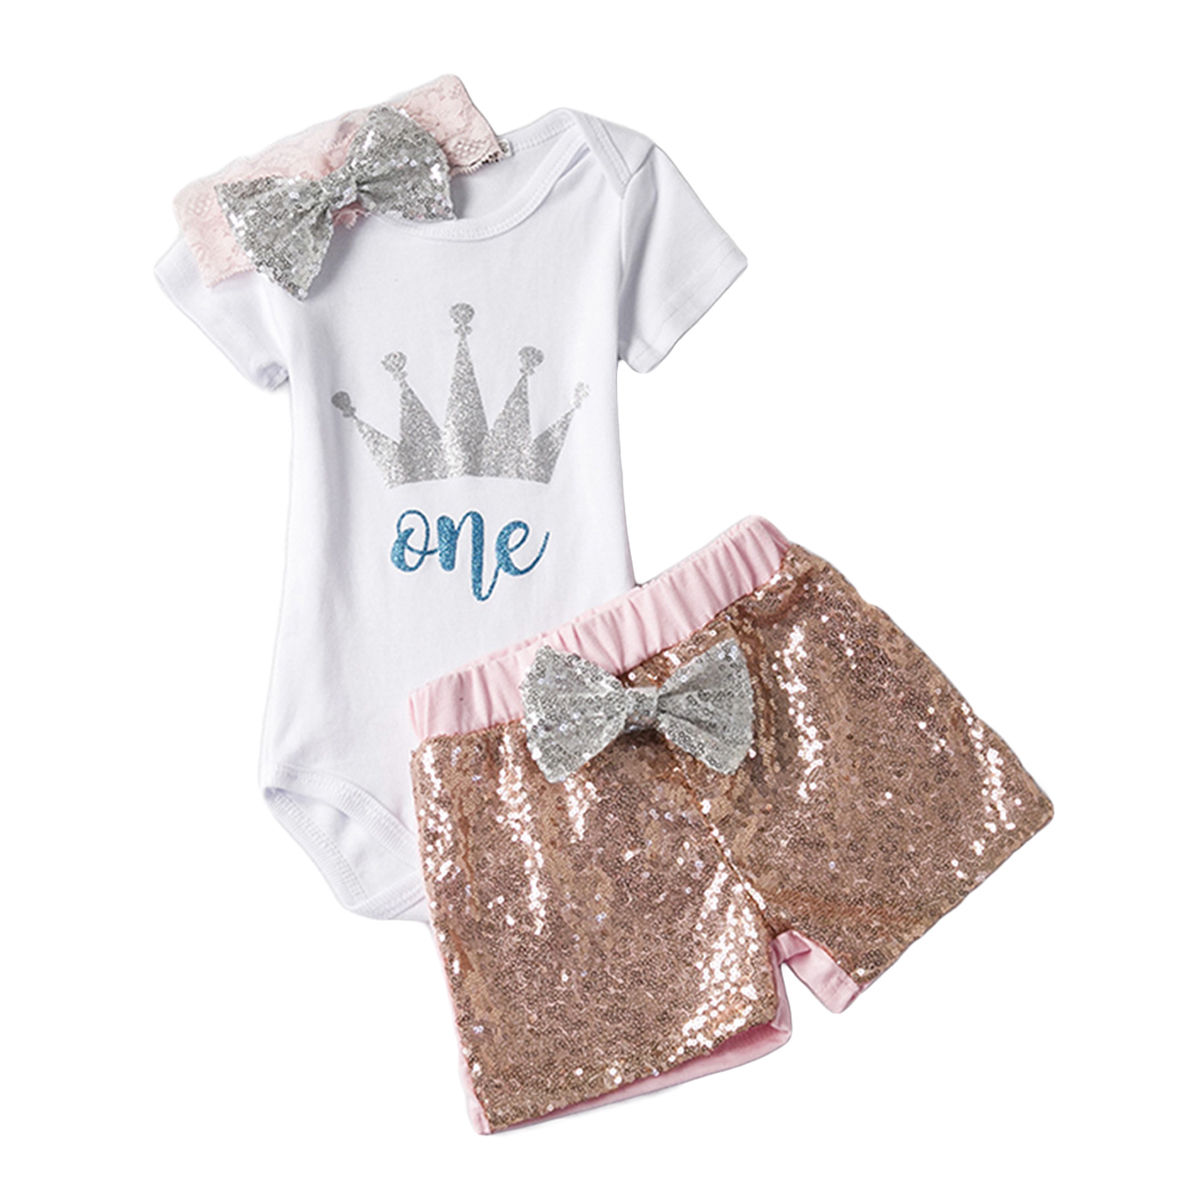 Baby Girls Birthday Outfits Clothes Newborn Kids One Print Romper Jumpsuit Bodysuit+Pants/Shorts set